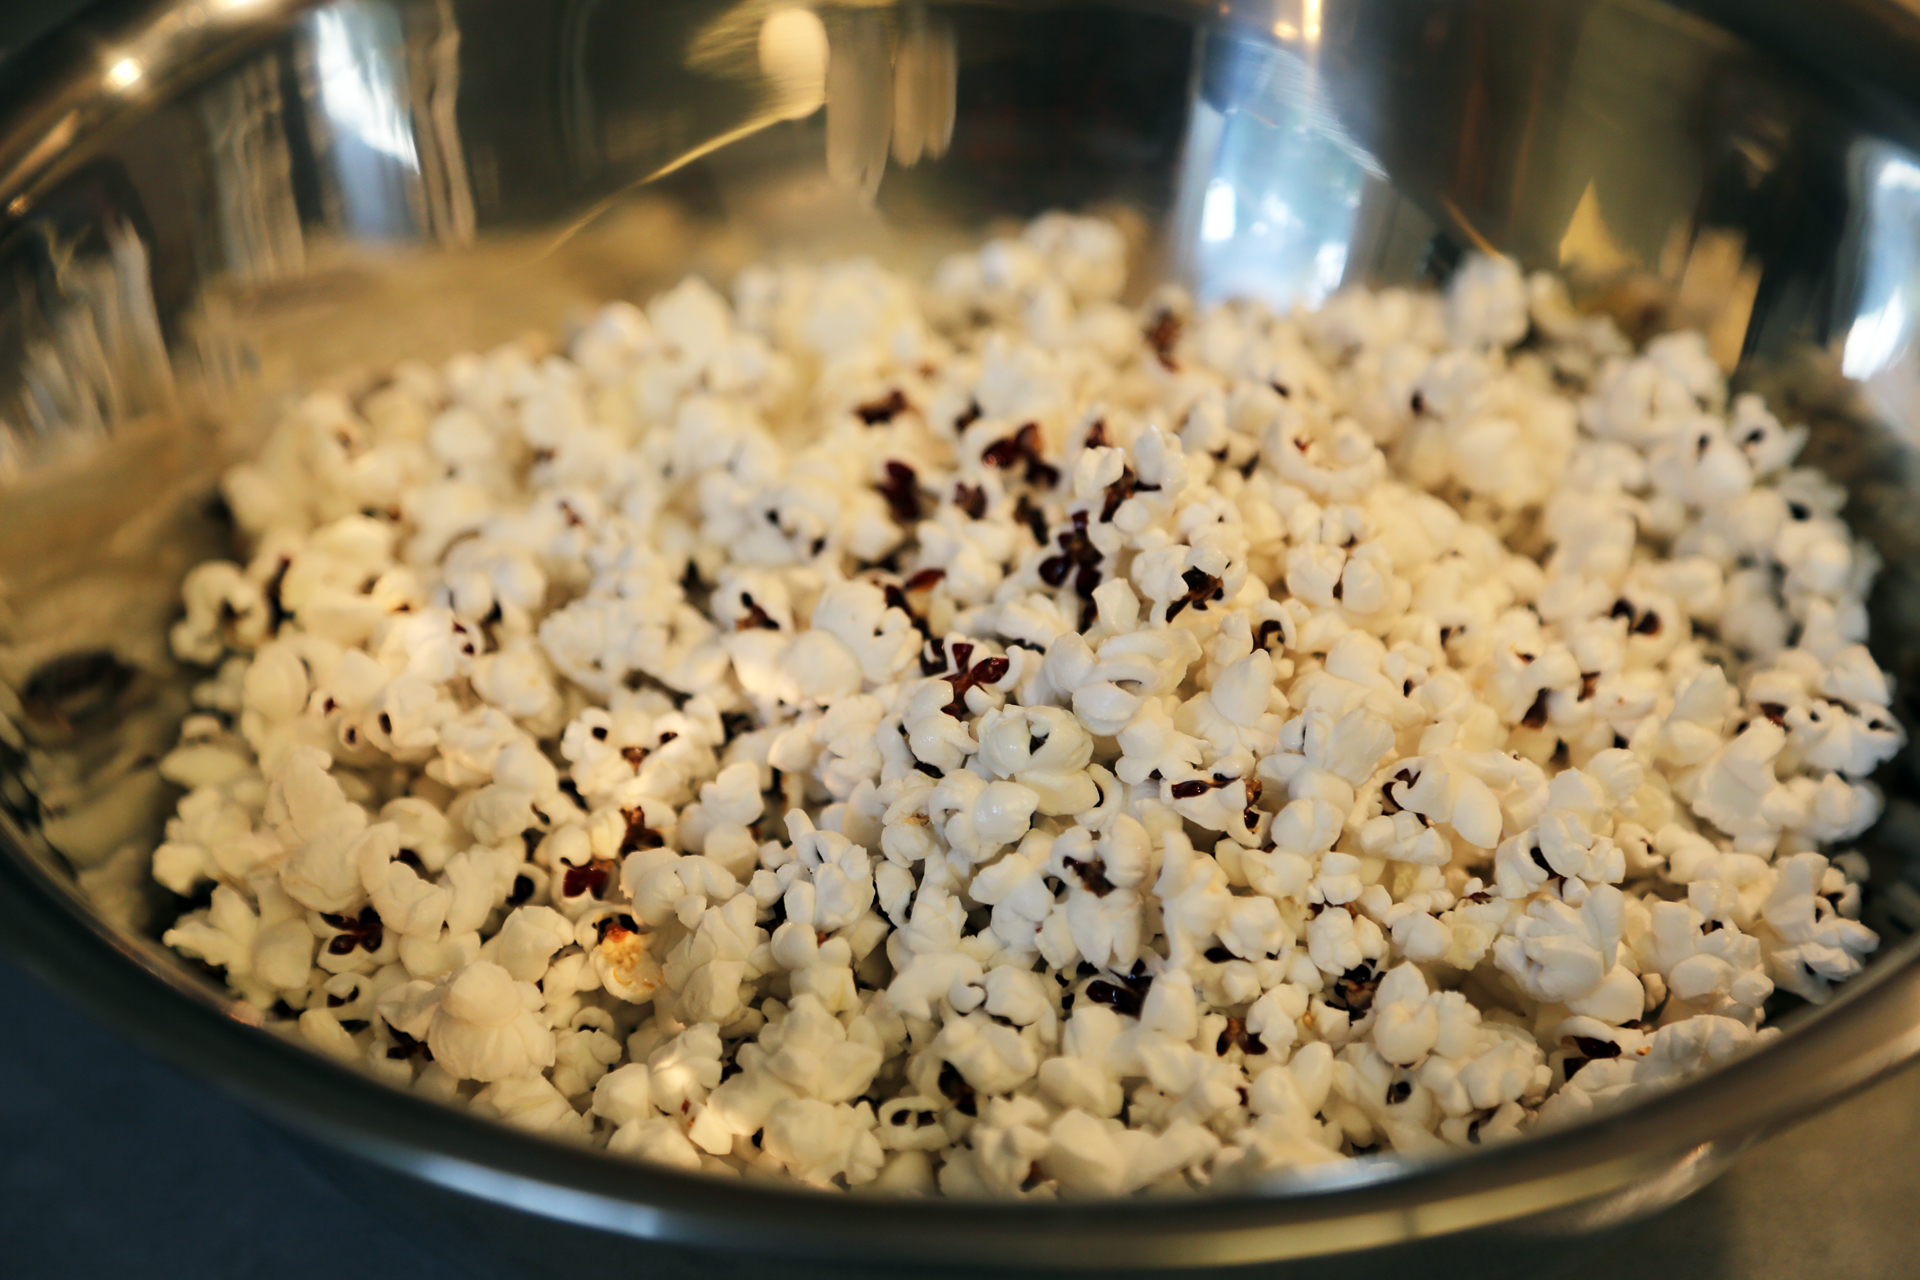 Pop the popcorn according to package directions, transfer to a large mixing bowl.